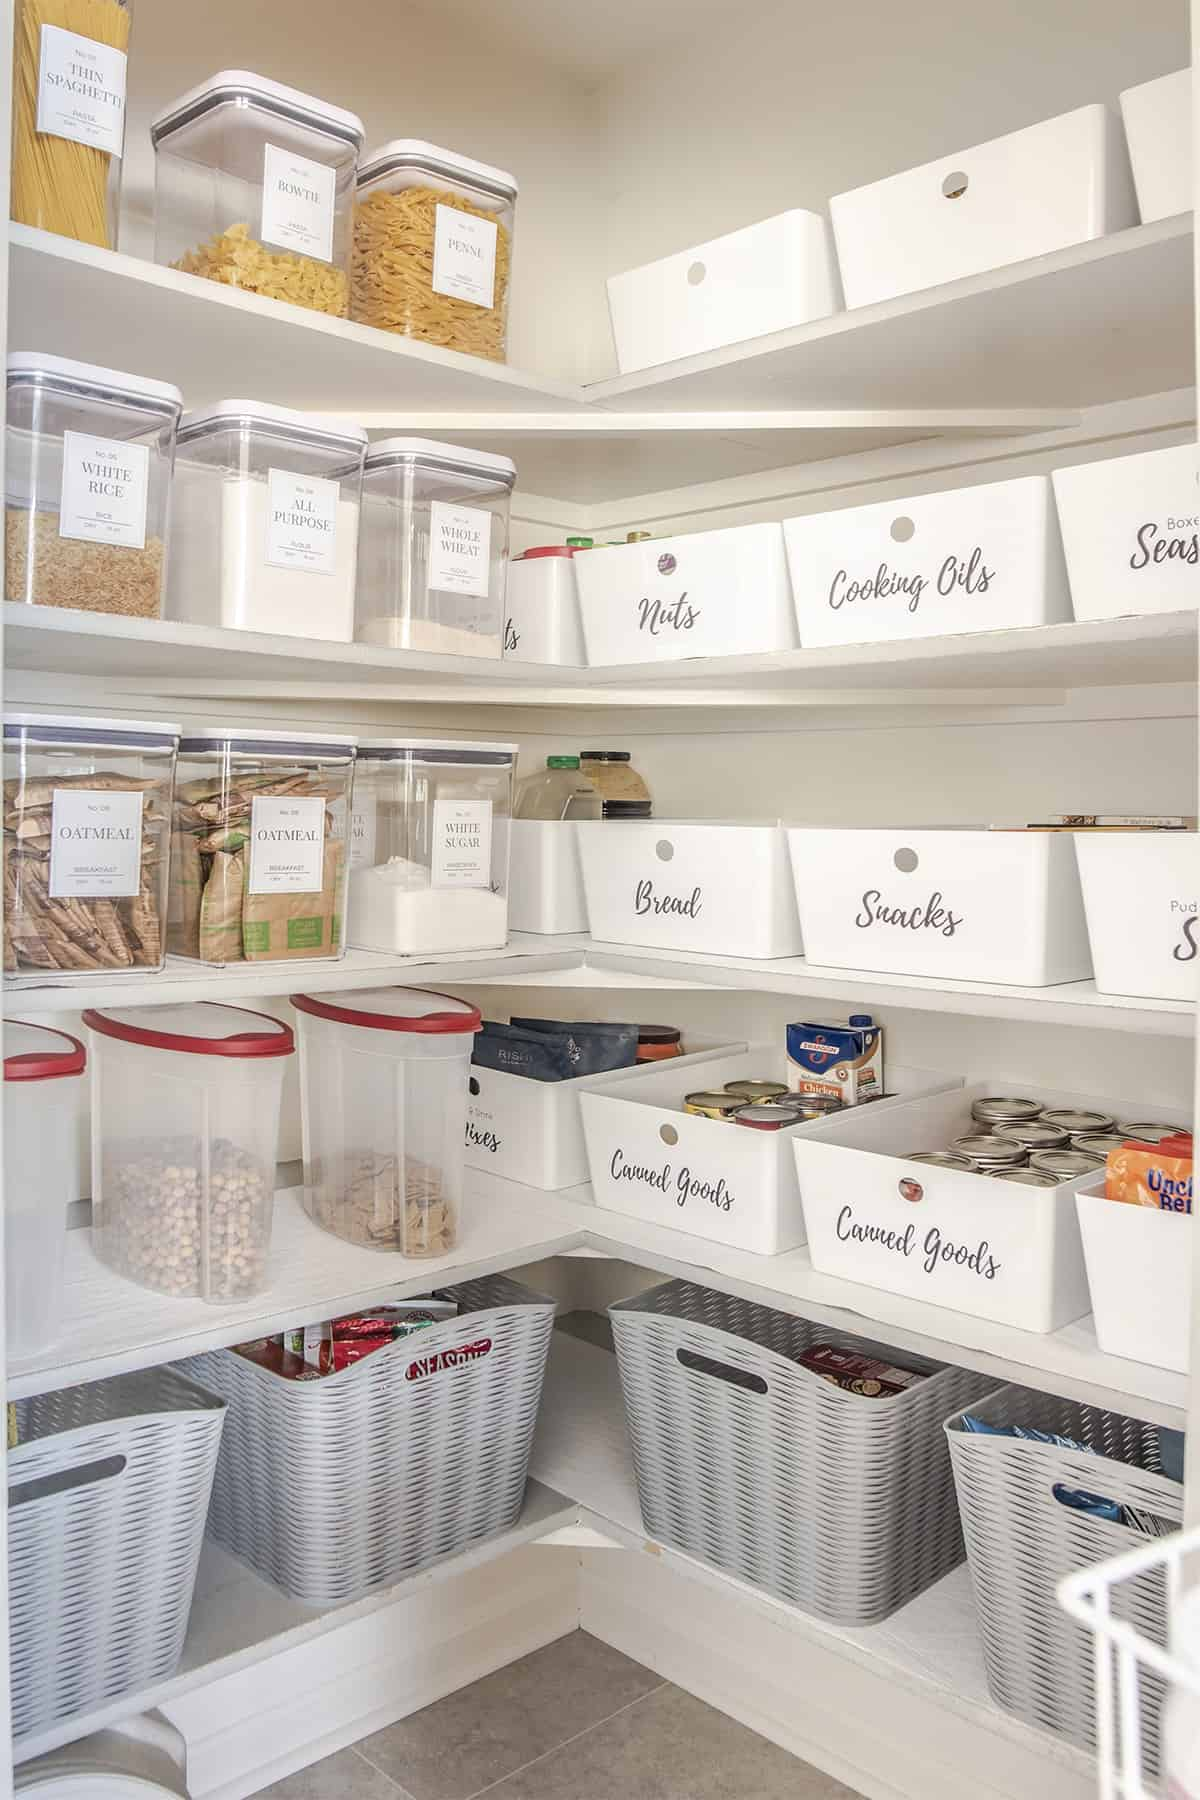 Clear labeled canisters keep dry goods handy. Wide labeled flats keep snacks, canned goods and other items organized on shelves.